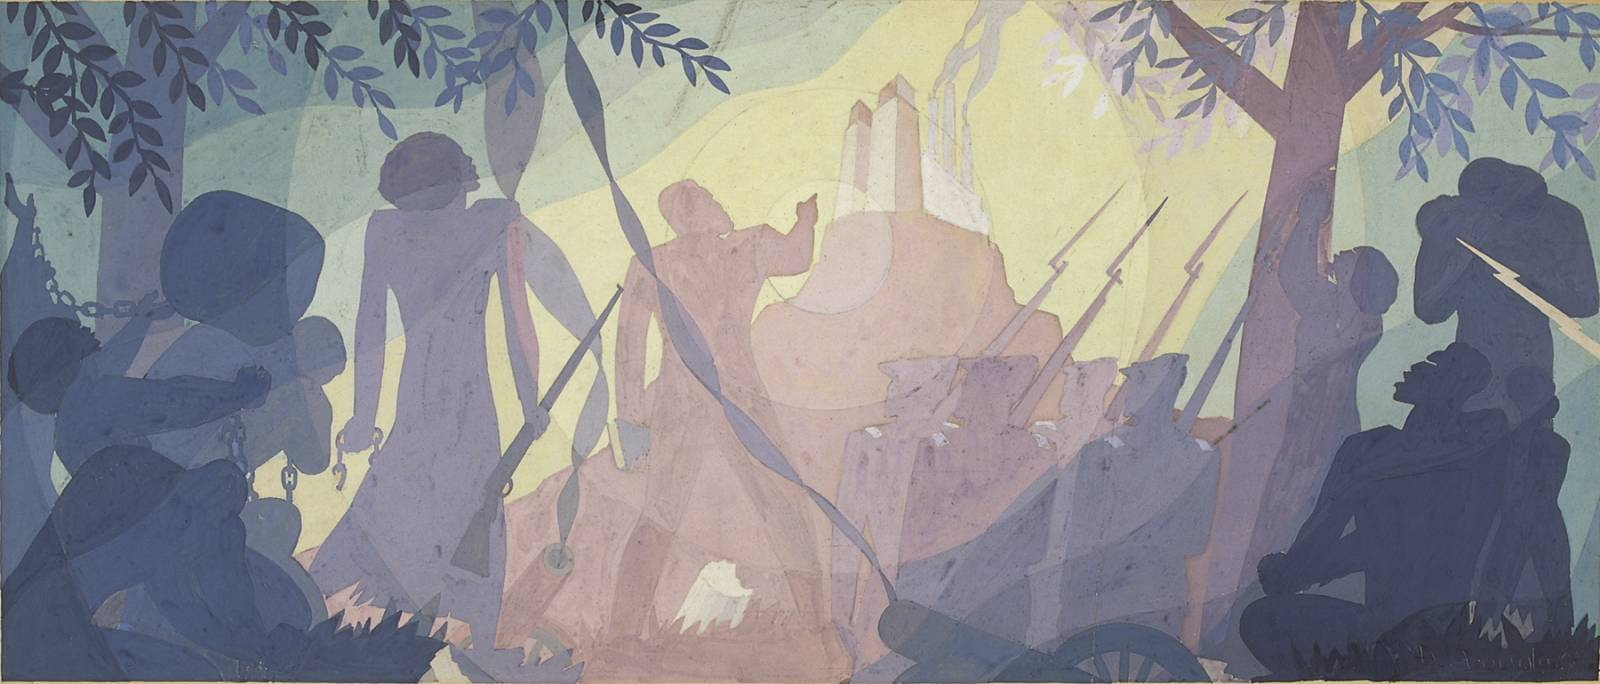 Aaron Douglas jones